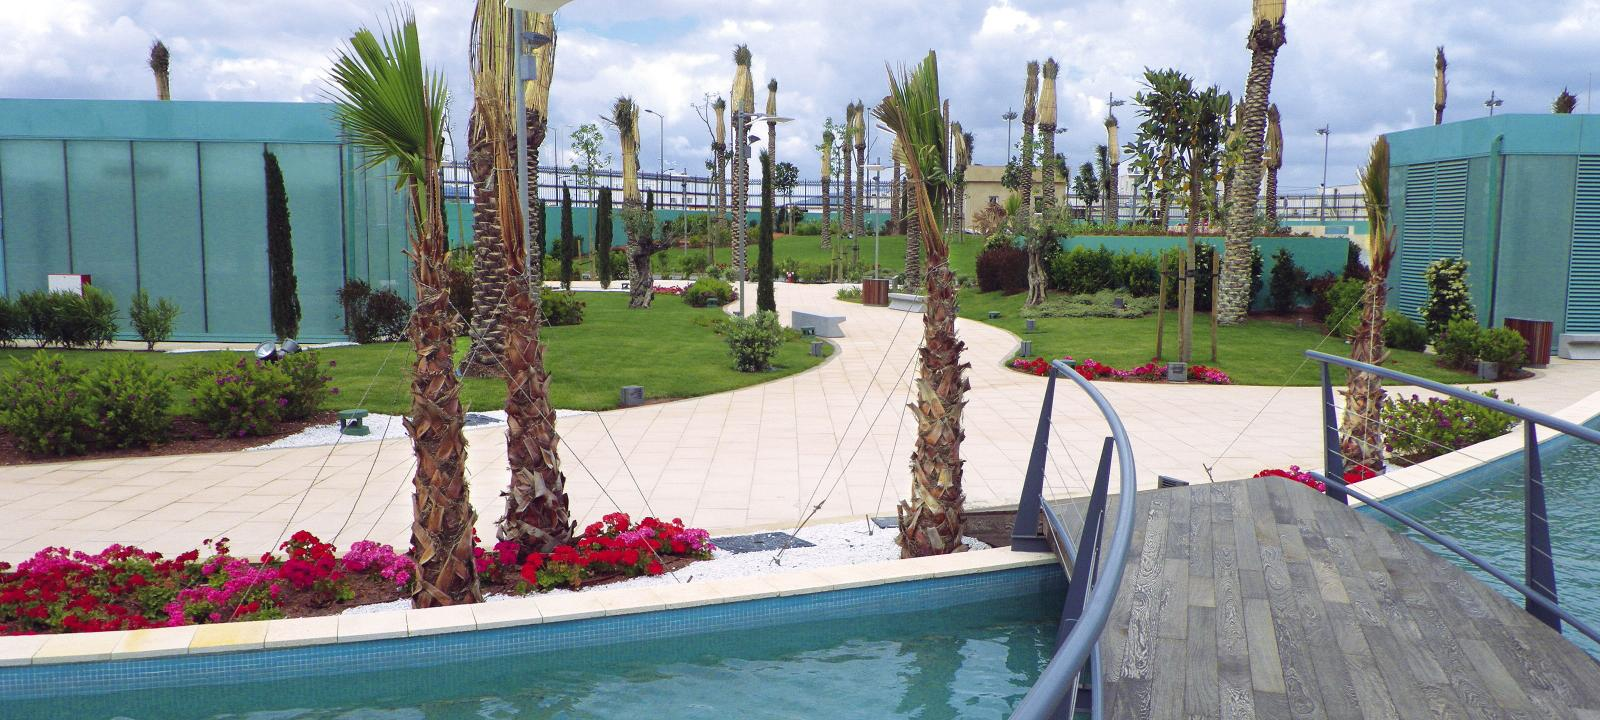 Roof garden with palm trees and a curved wooden bridge leading over a water basin